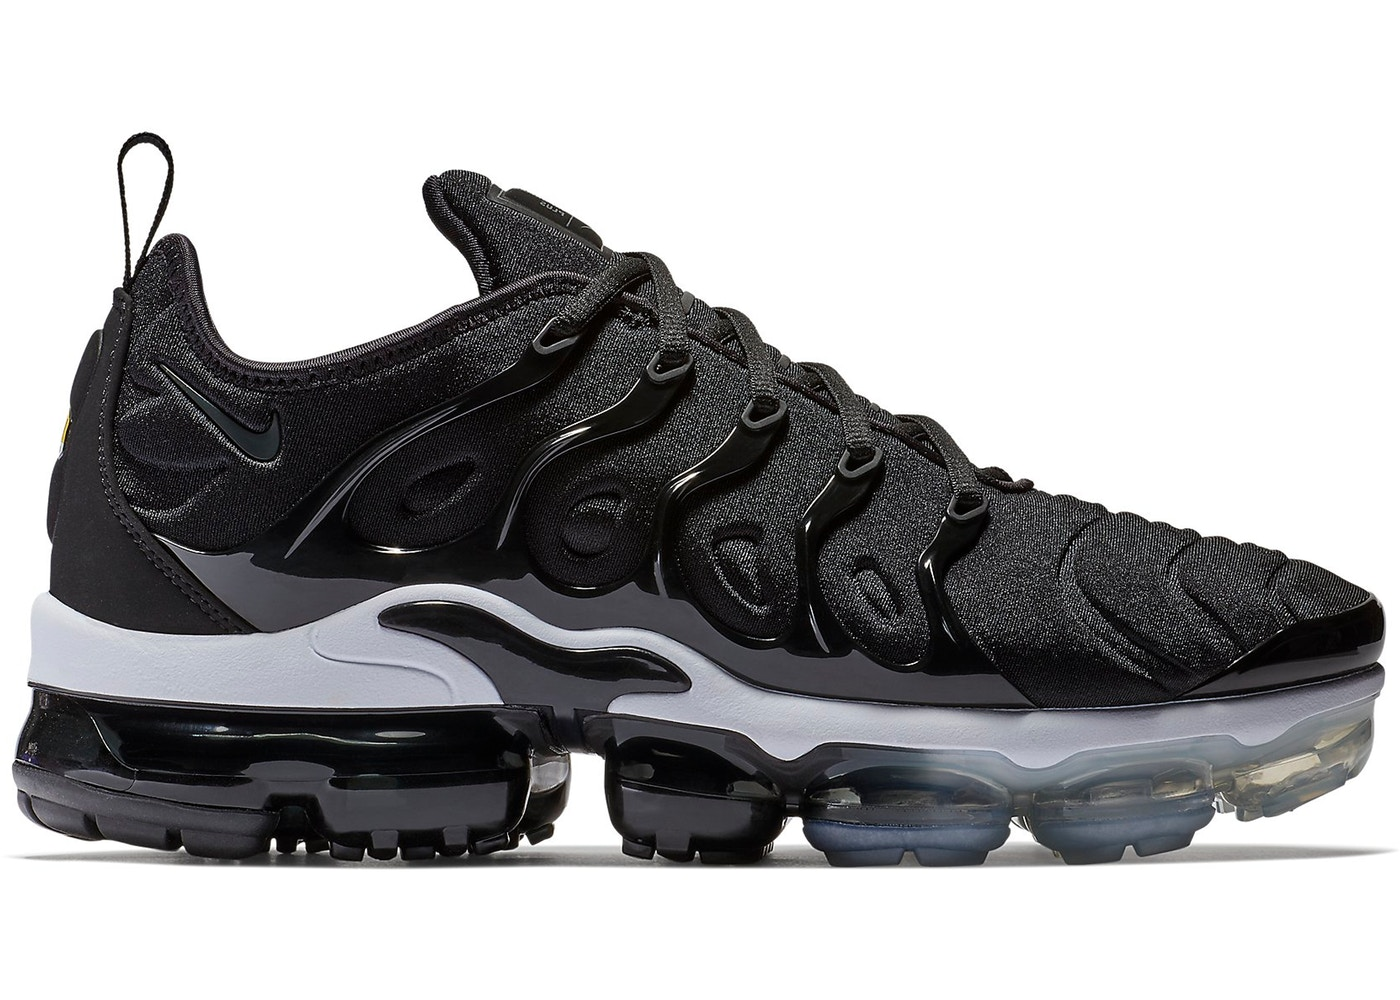 2018 Nike Air Vapor Max low